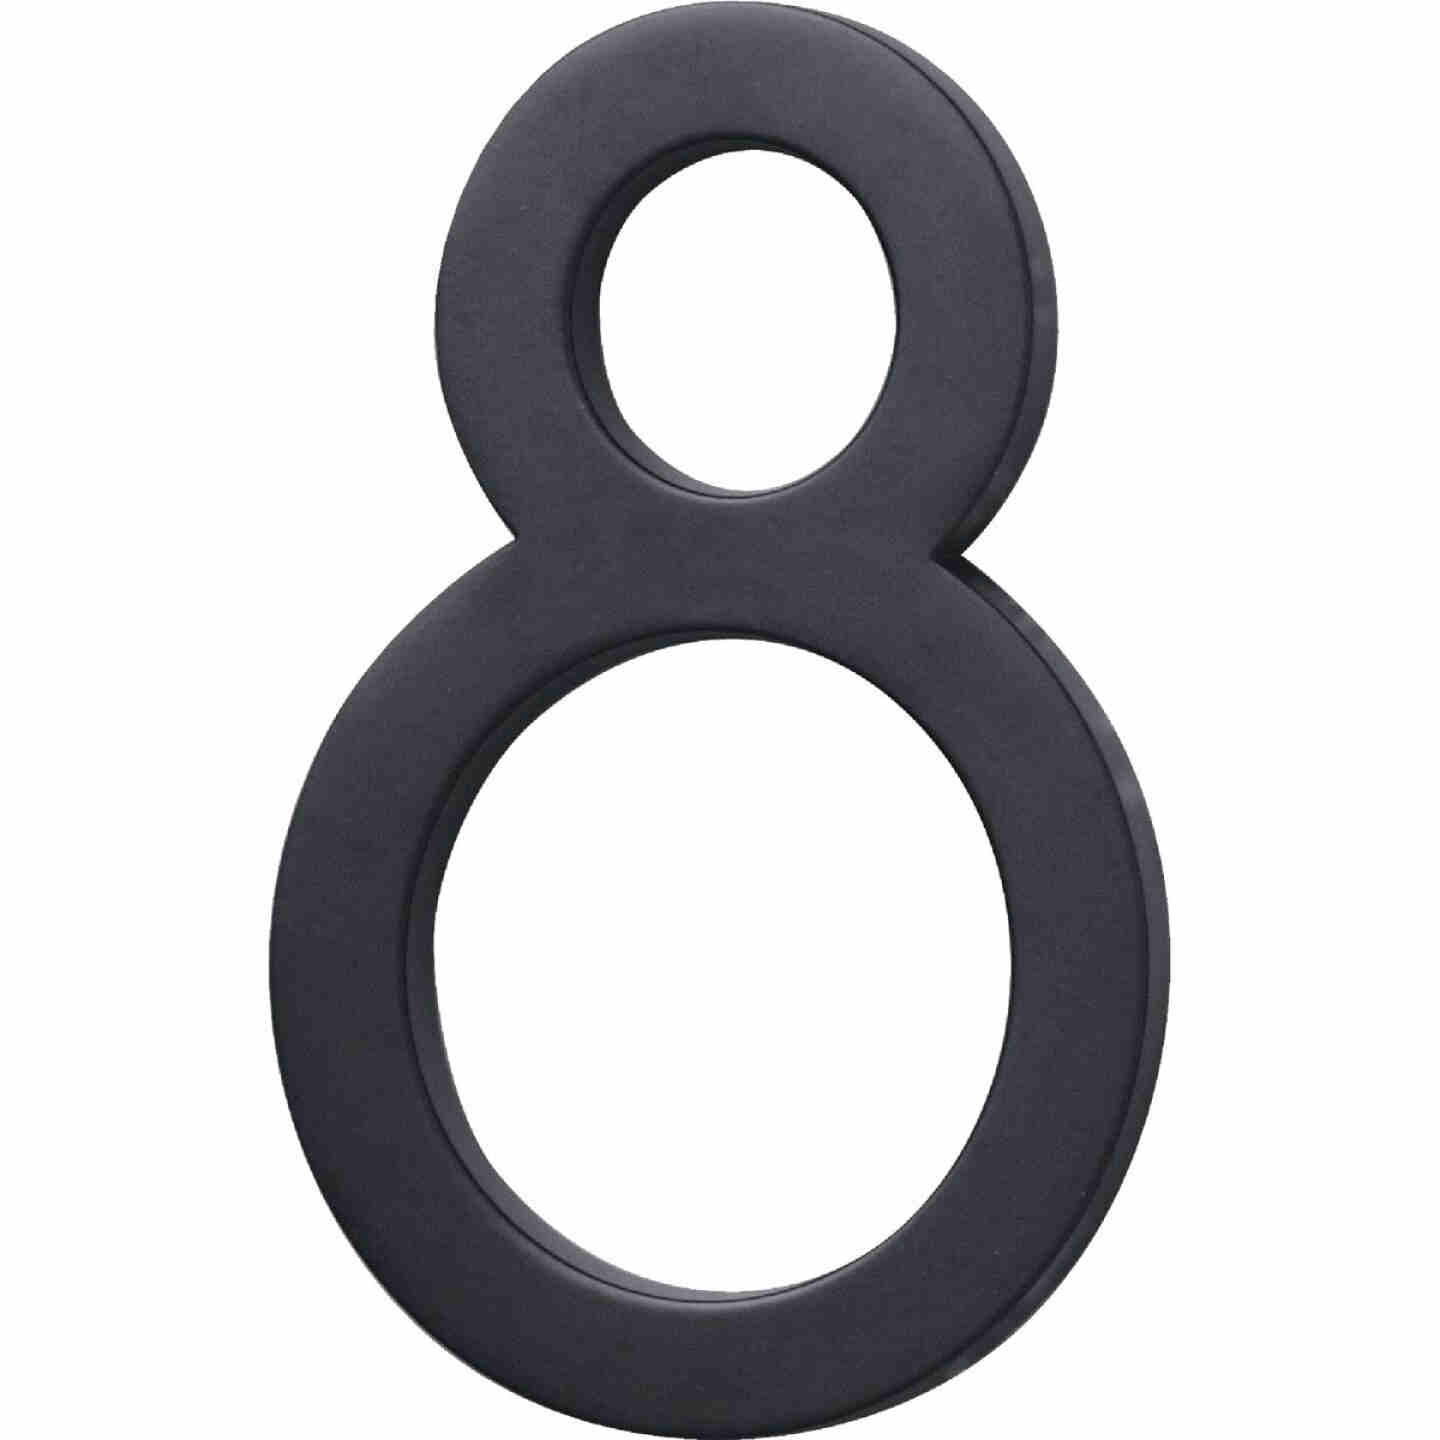 Hy-Ko Architectural Series 6 In. Satin Black House Number Eight Image 1